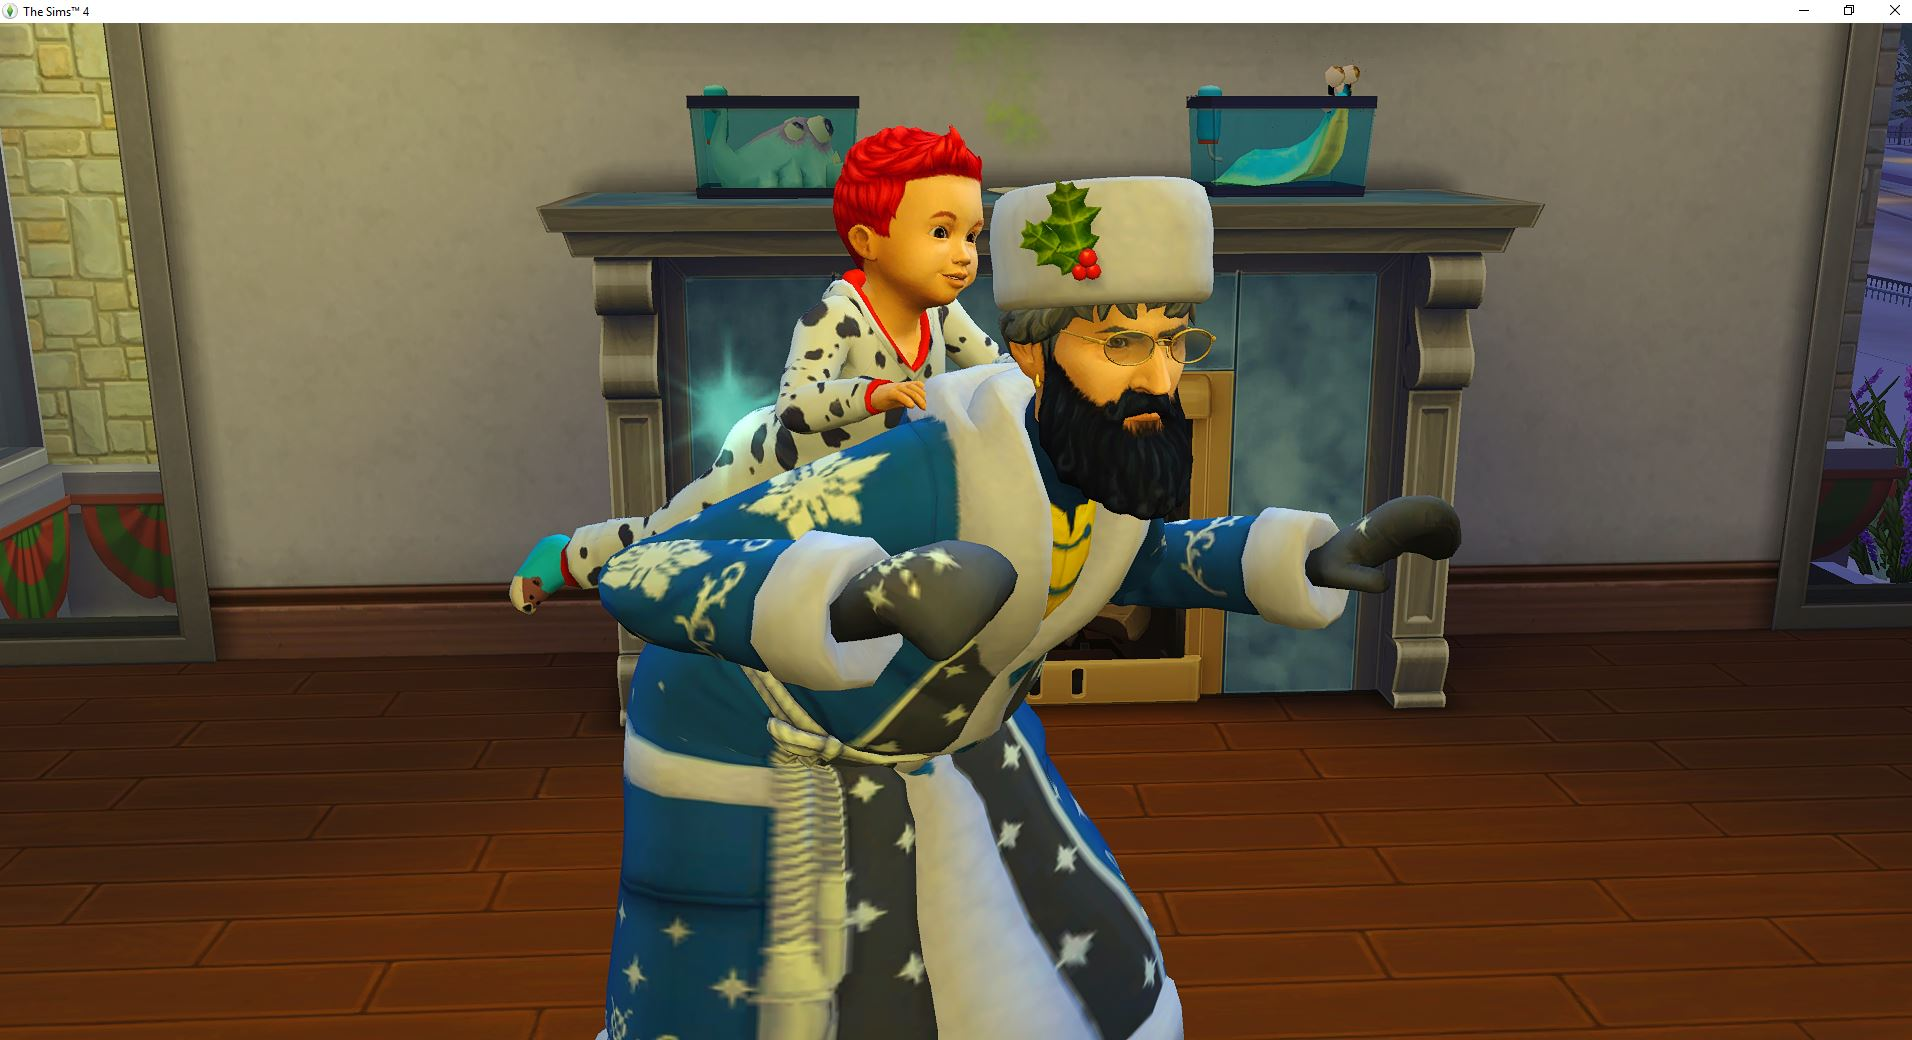 2018-12-31 17_37_29-The Sims™ 4